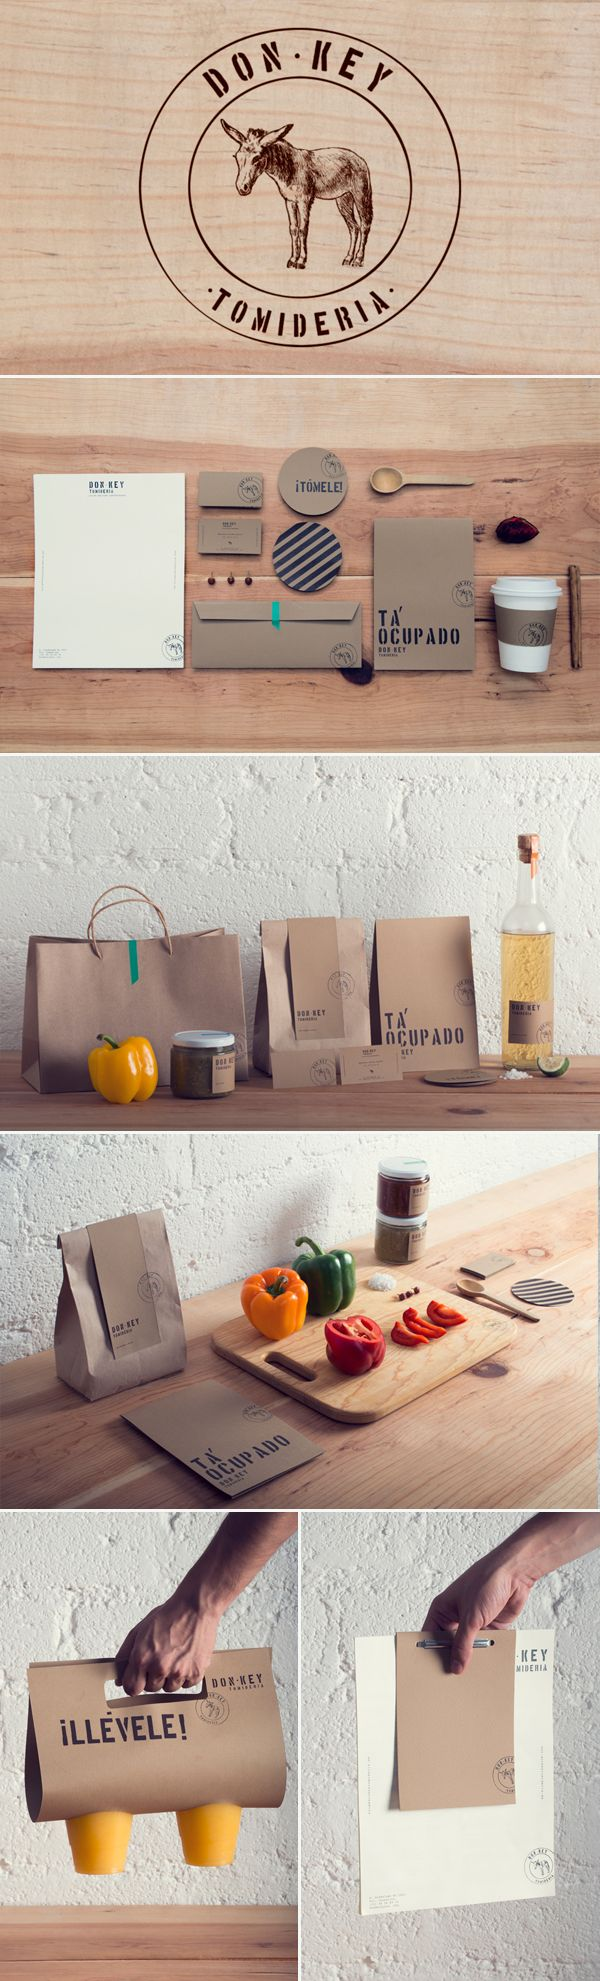 identity / Don Key / traditional Mexican kitchen